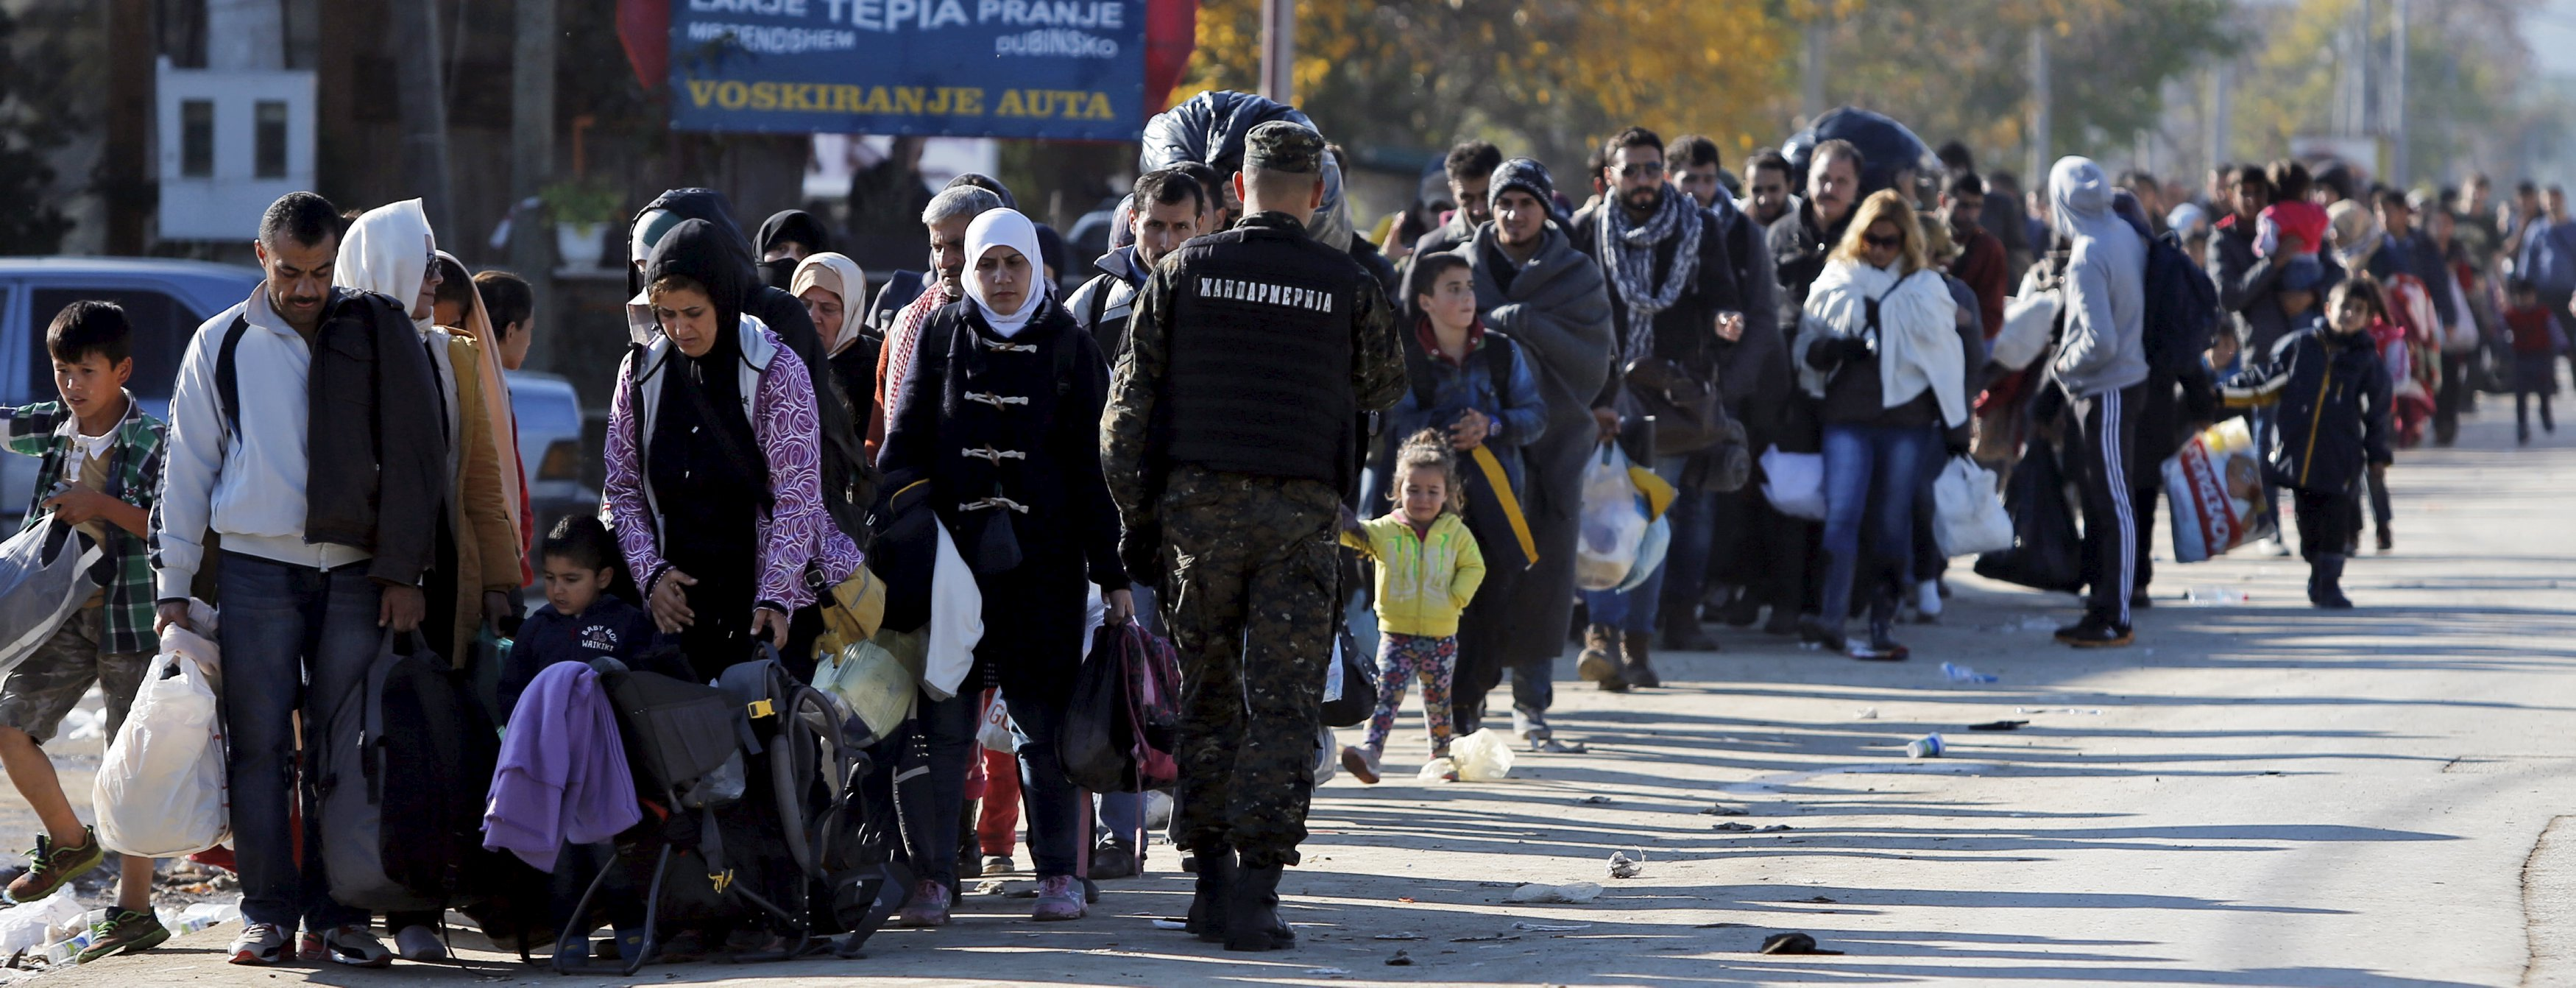 <p>Migrants wait to enter a registration camp in Preshevo , Serbia October 25, 2015. Europe's chief executive Jean-Claude Juncker will on Sunday meet with leaders from central and eastern Europe to push for a coordinated response to the influx of refugees before winter sets in. Juncker, who heads the European Commission, has called leaders of Austria, Bulgaria, Croatia, Macedonia, Germany, Greece, Hungary, Romania, Serbia and Slovenia, plus refugee organizations involved, to attend the meeting in Brussels. REUTERS/Ognen Teofilovski</p>